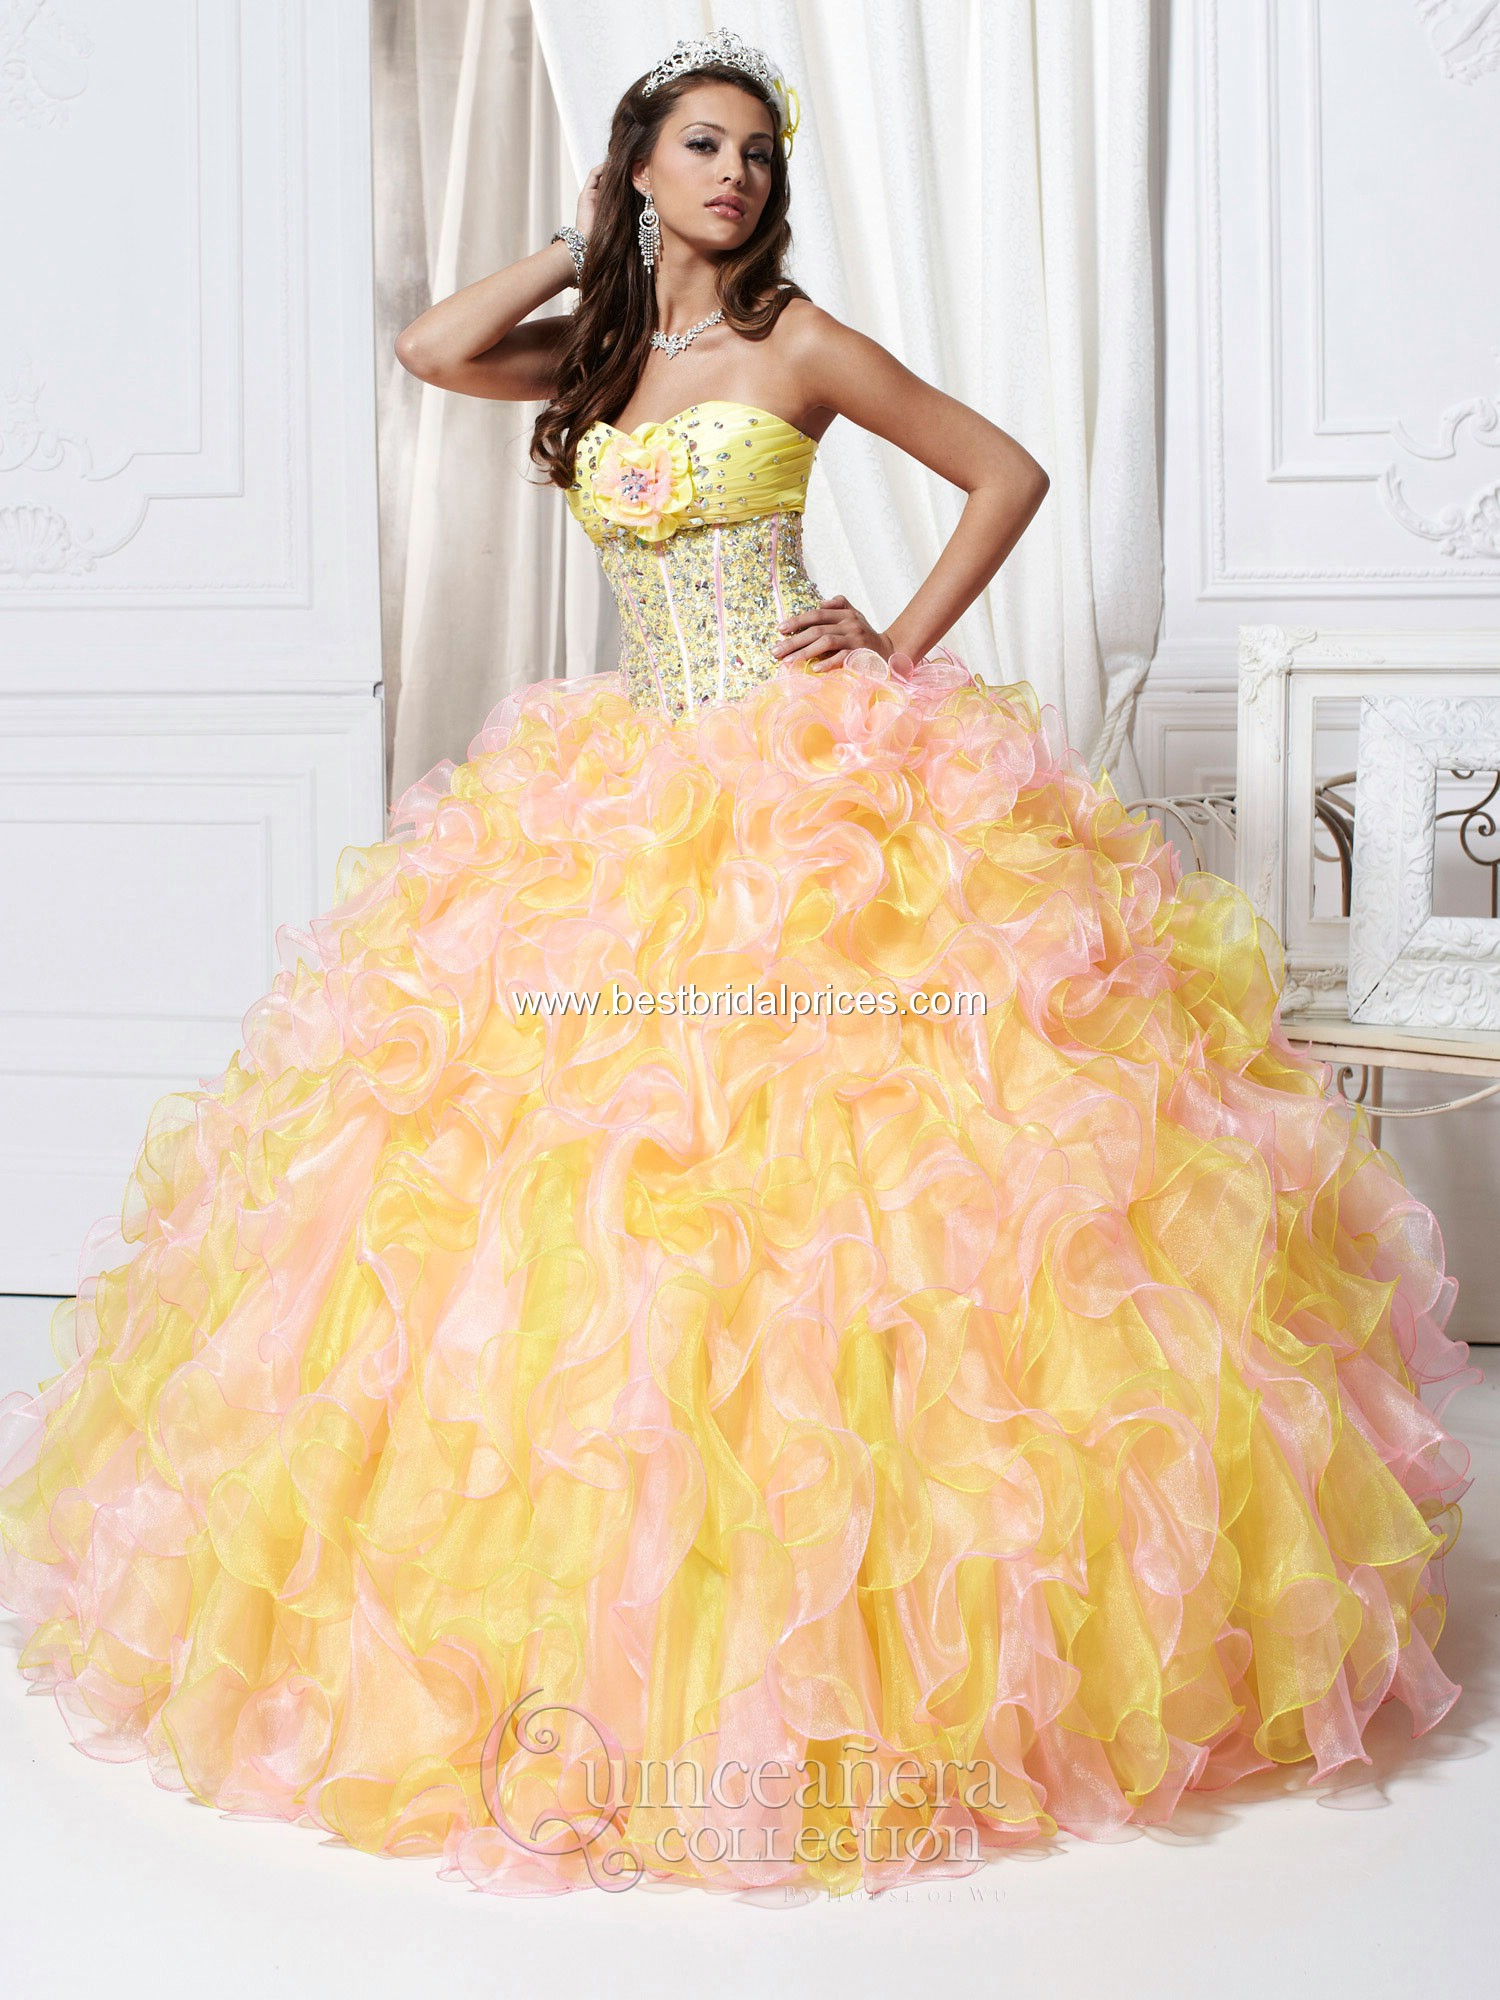 A Yellow Quinceanera